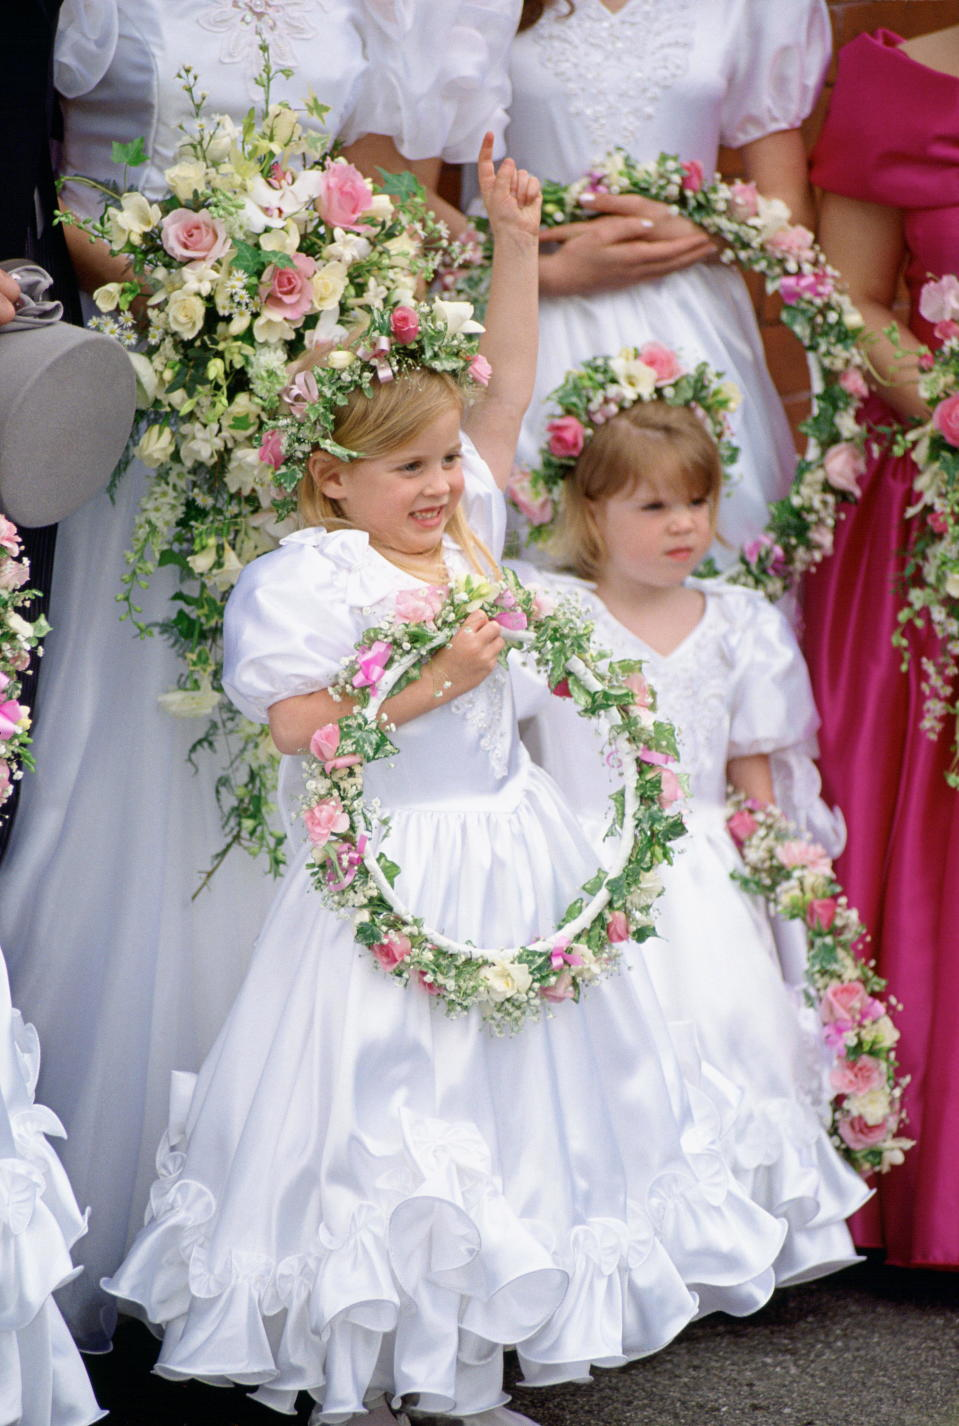 MANCHESTER, UNITED KINGDOM - APRIL 24:  Princess Beatrice And Princess Eugenie As Bridesmaids At Alison Wardley Wedding.  (Photo by Tim Graham Photo Library via Getty Images)